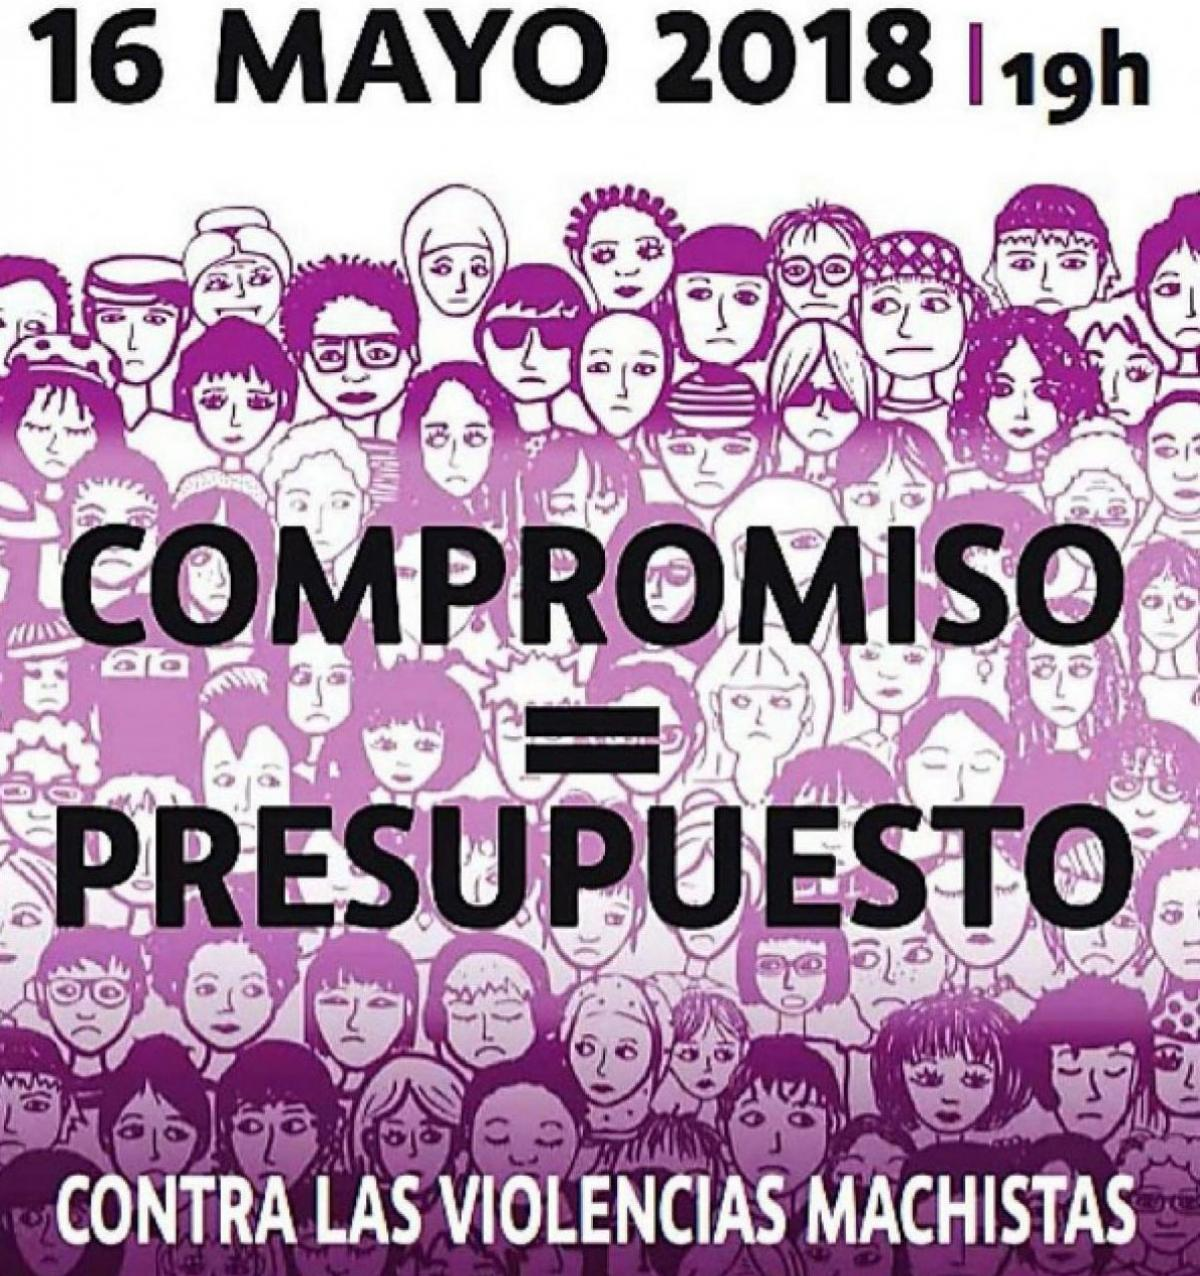 Cartel movilizaciones femenistas 16 de mayo